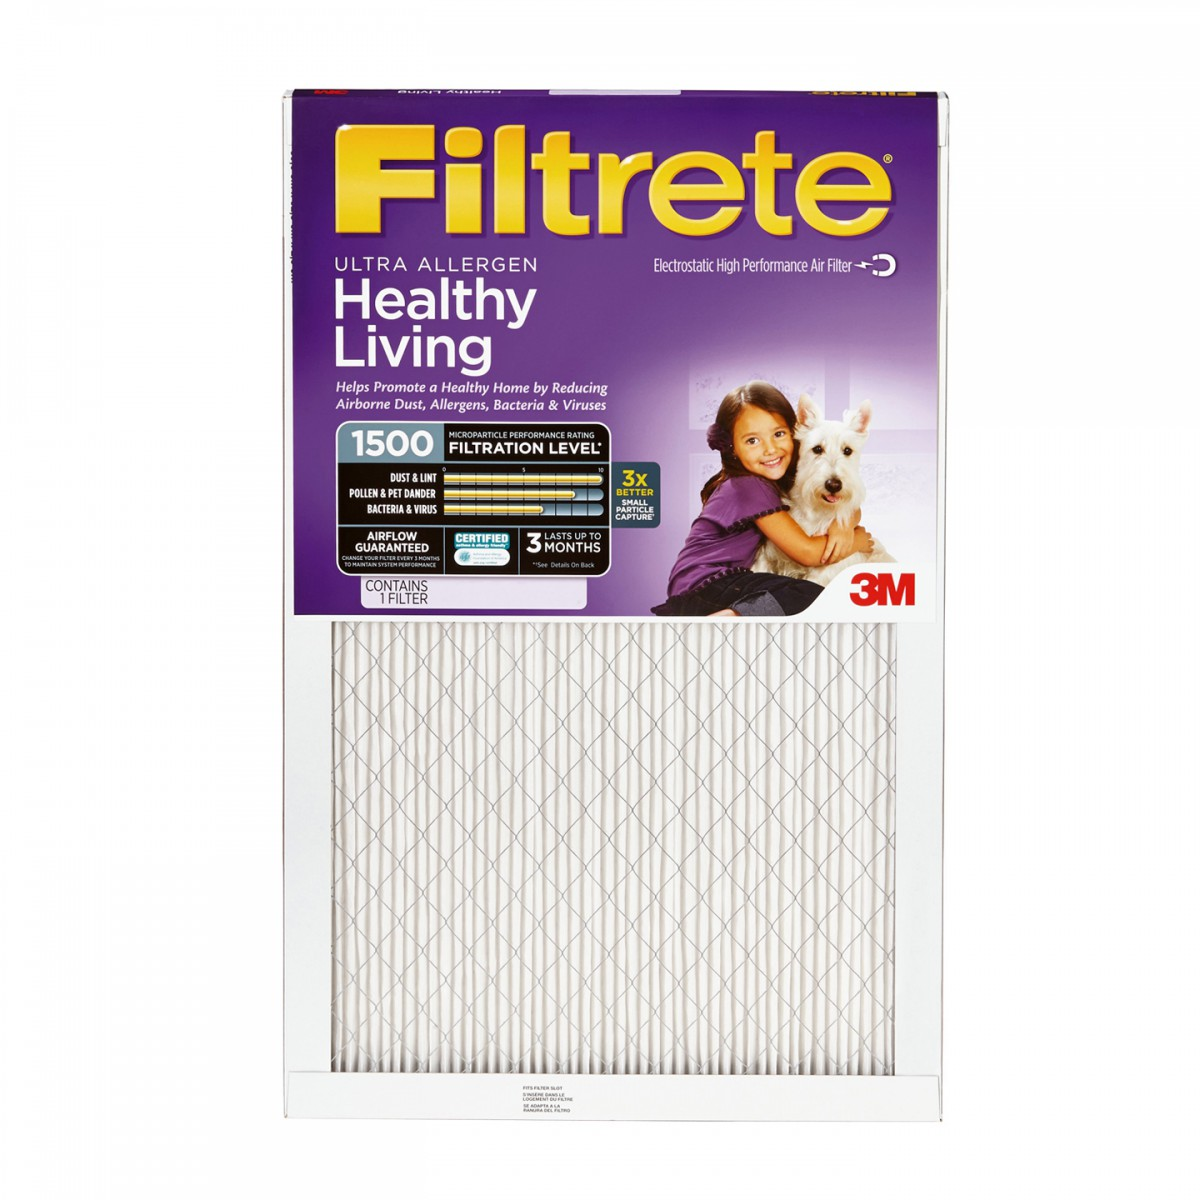 3M Filtrete Air Conditioner & Furnace Air Filters Replace your old air filter with a Filtrete air/furnace filter from Discount Filter Store Clean air filters can reduce pollen and allergens in the air while reducing the energy cost of your home's HVAC system.